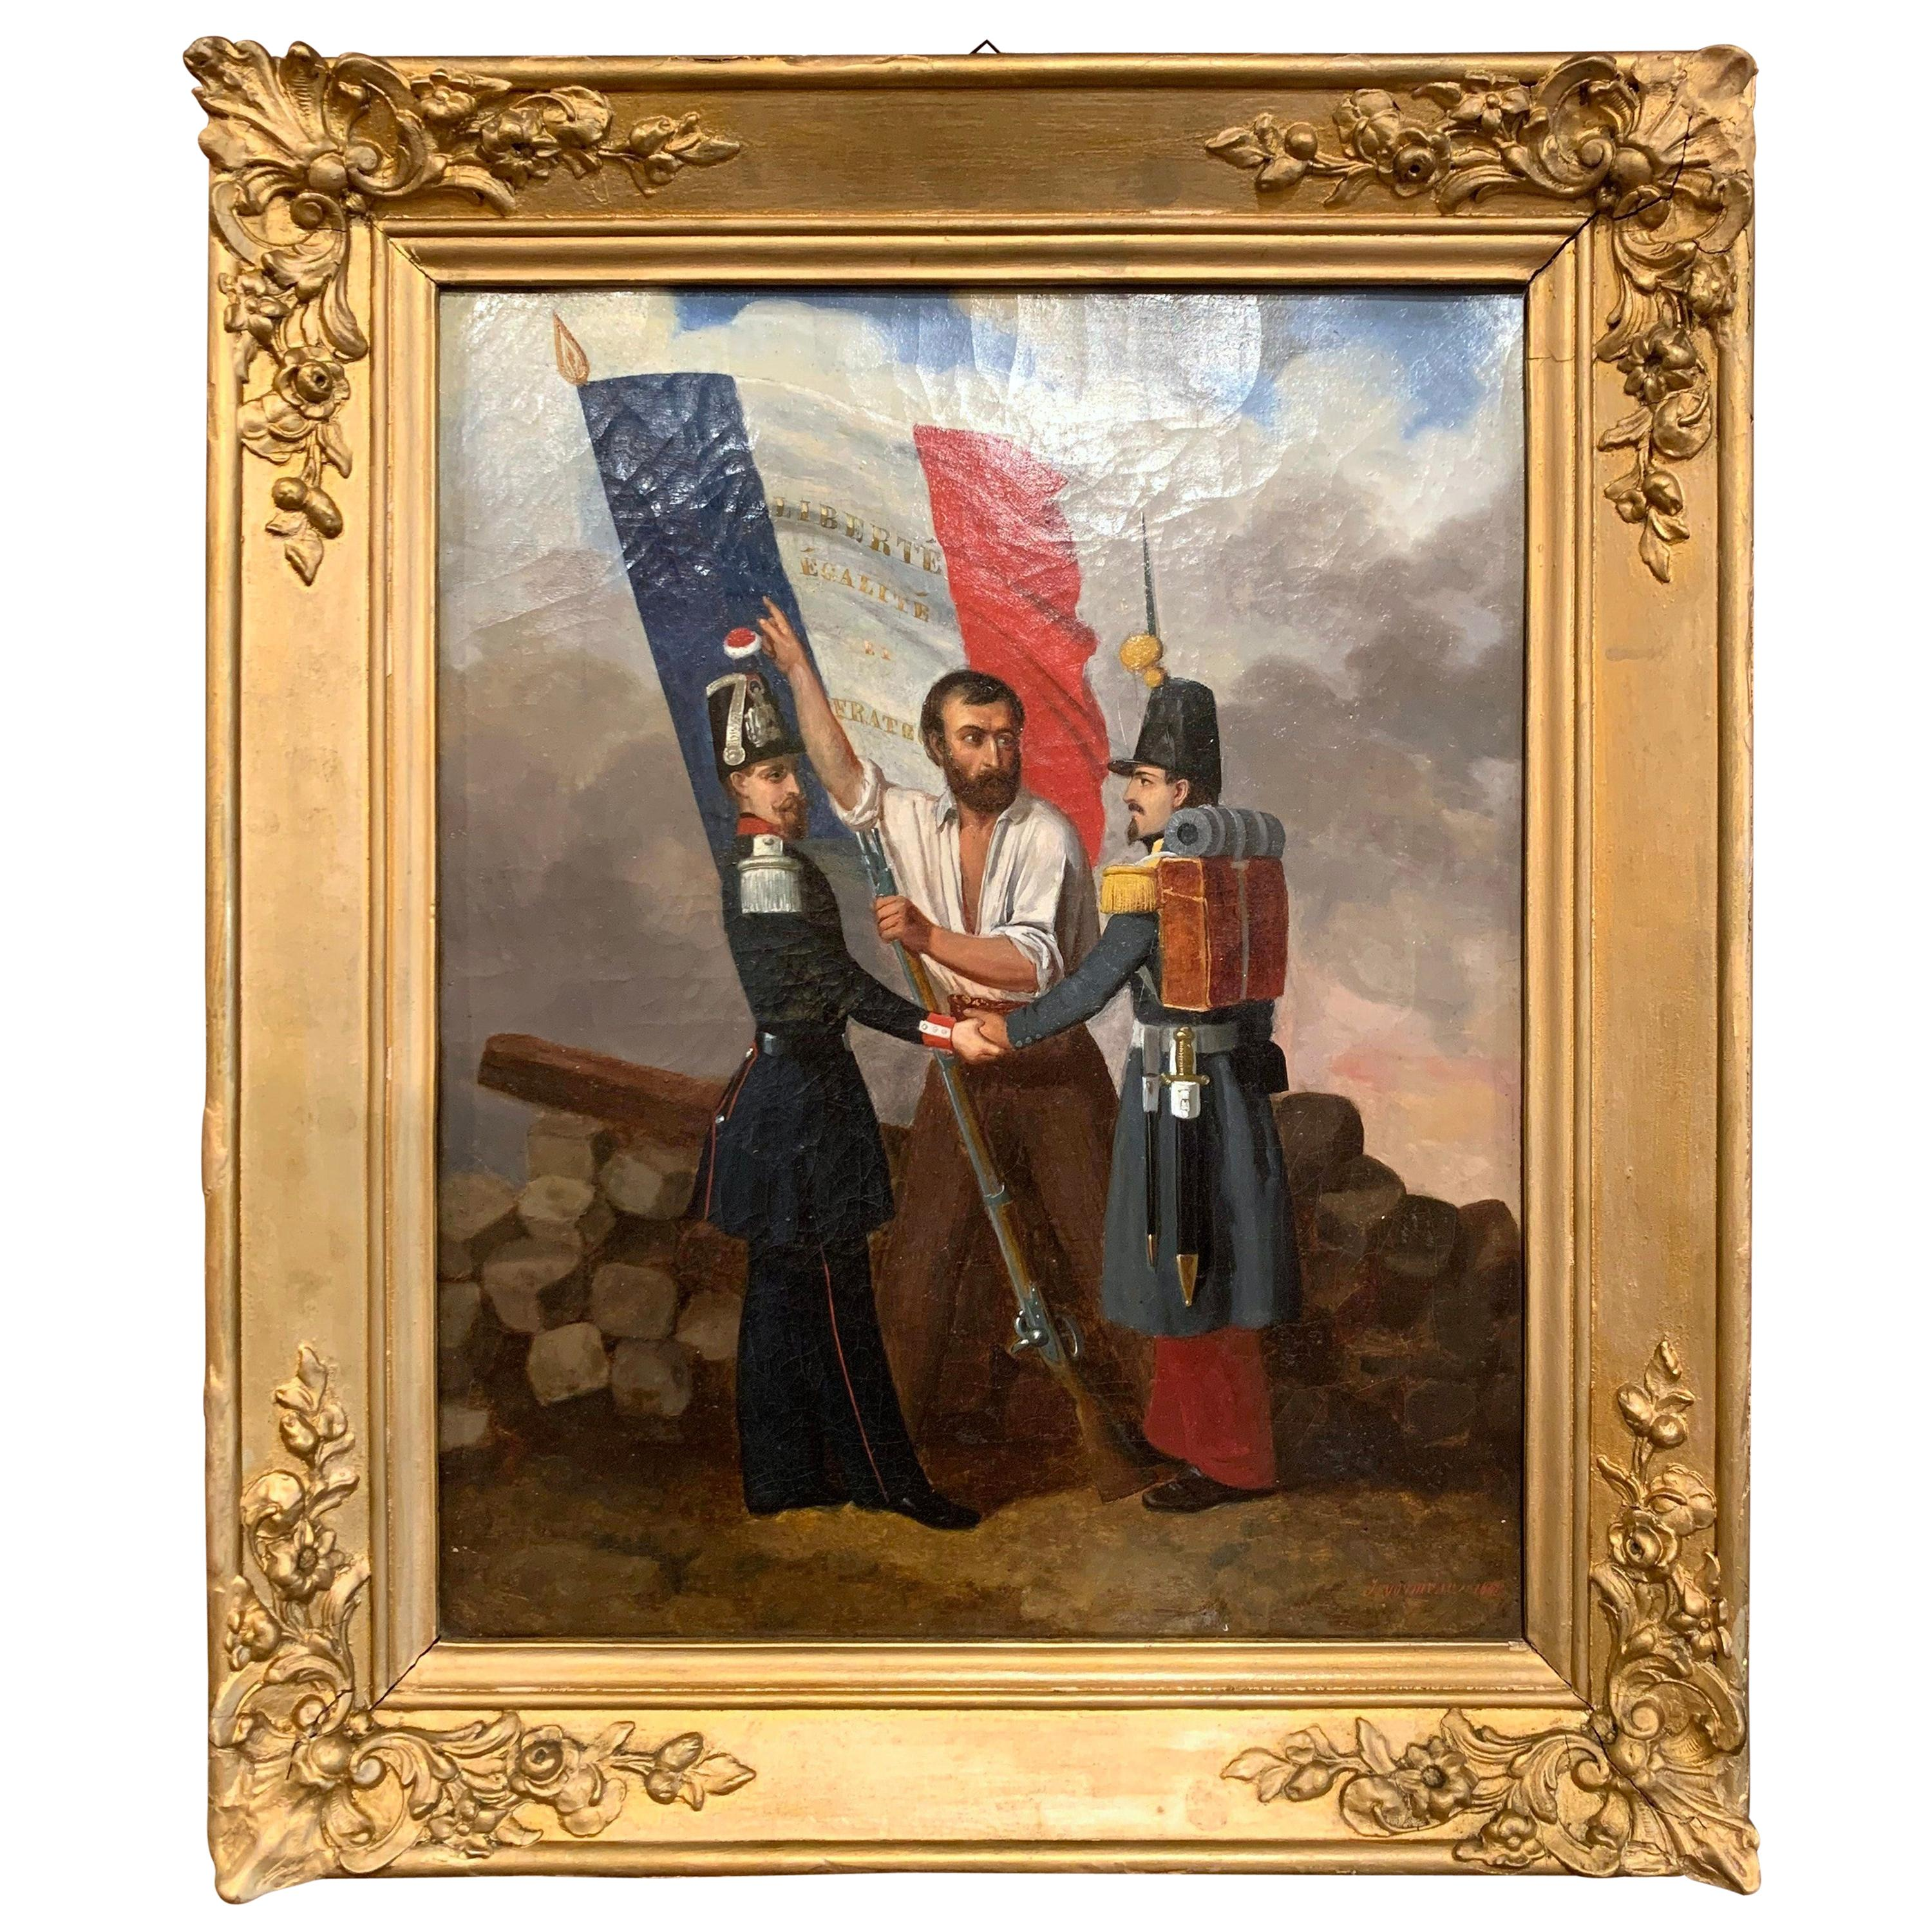 19th Century Oil on Canvas French Revolution Painting Signed and Dated 1849